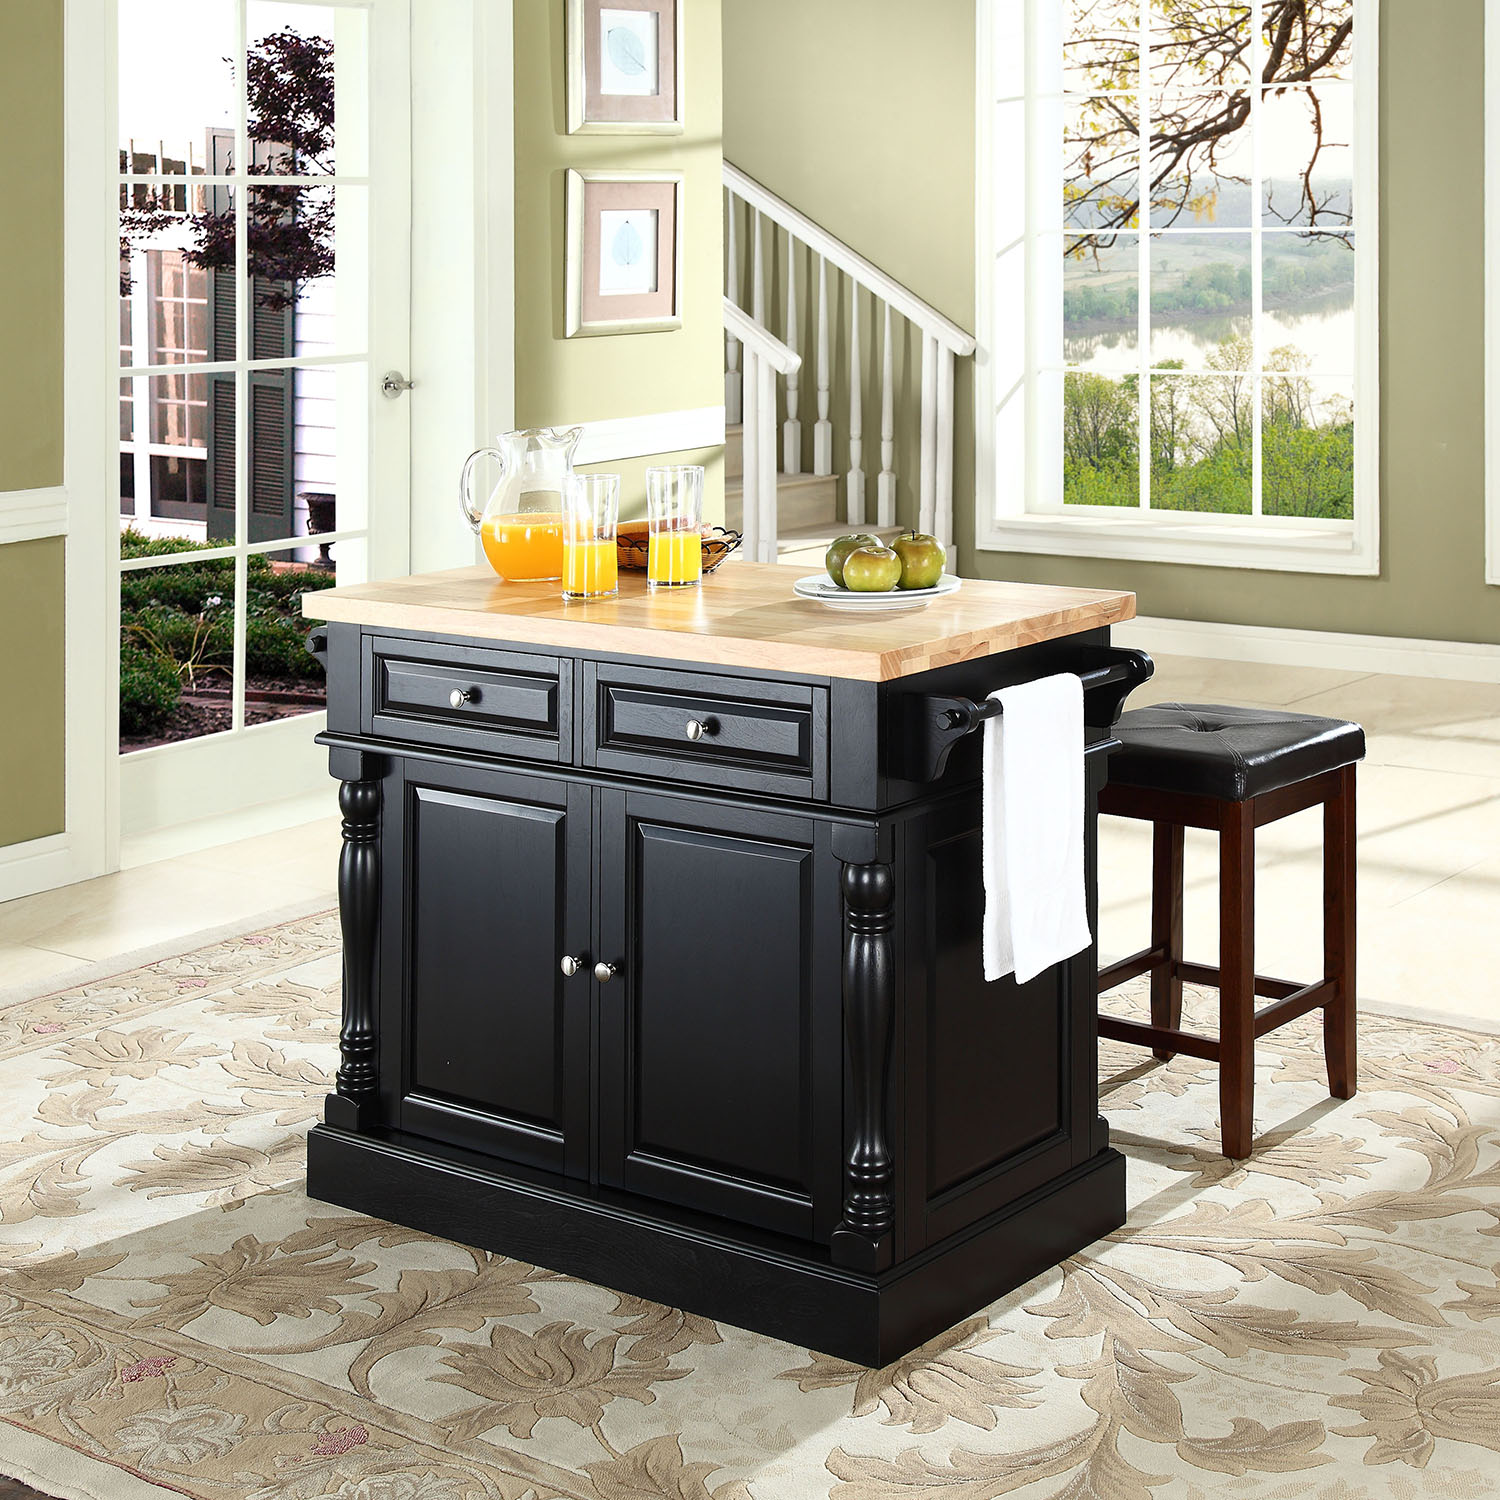 Butcher Block Top Kitchen Island With Square Seat Stools